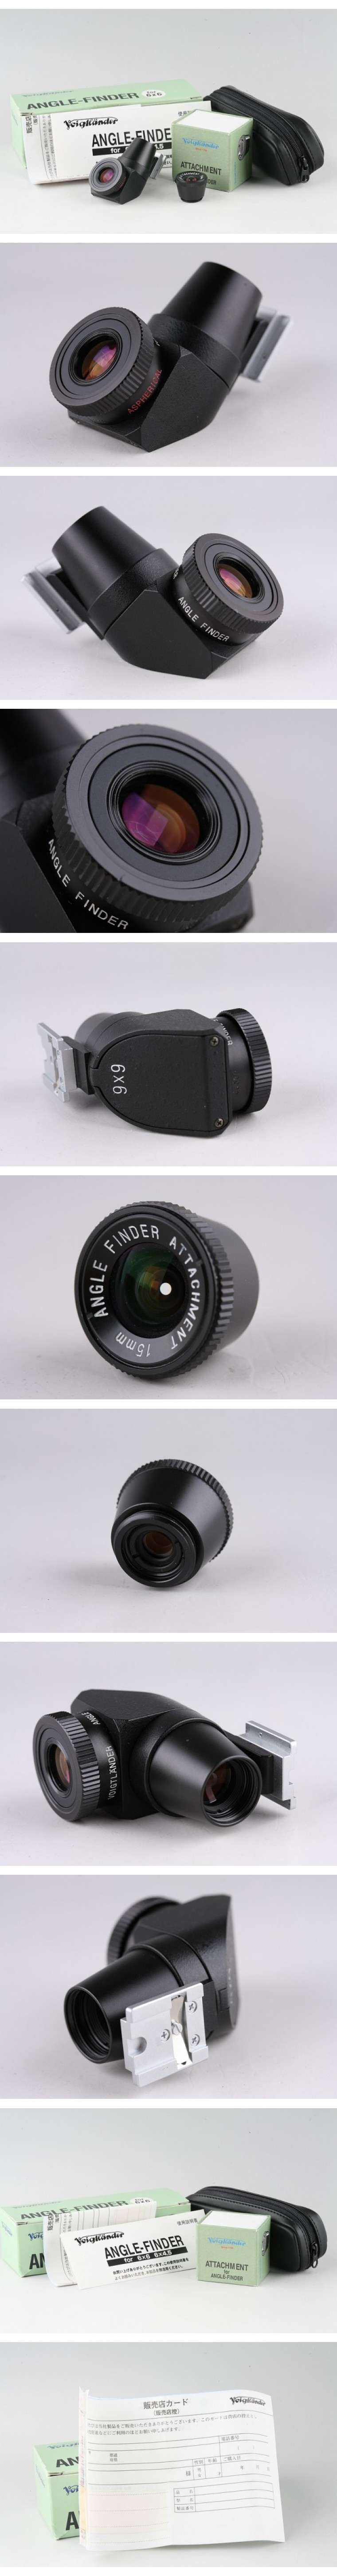 Voightlander Angle-Finder for Hasselblad SWC 6x6 #8049F2